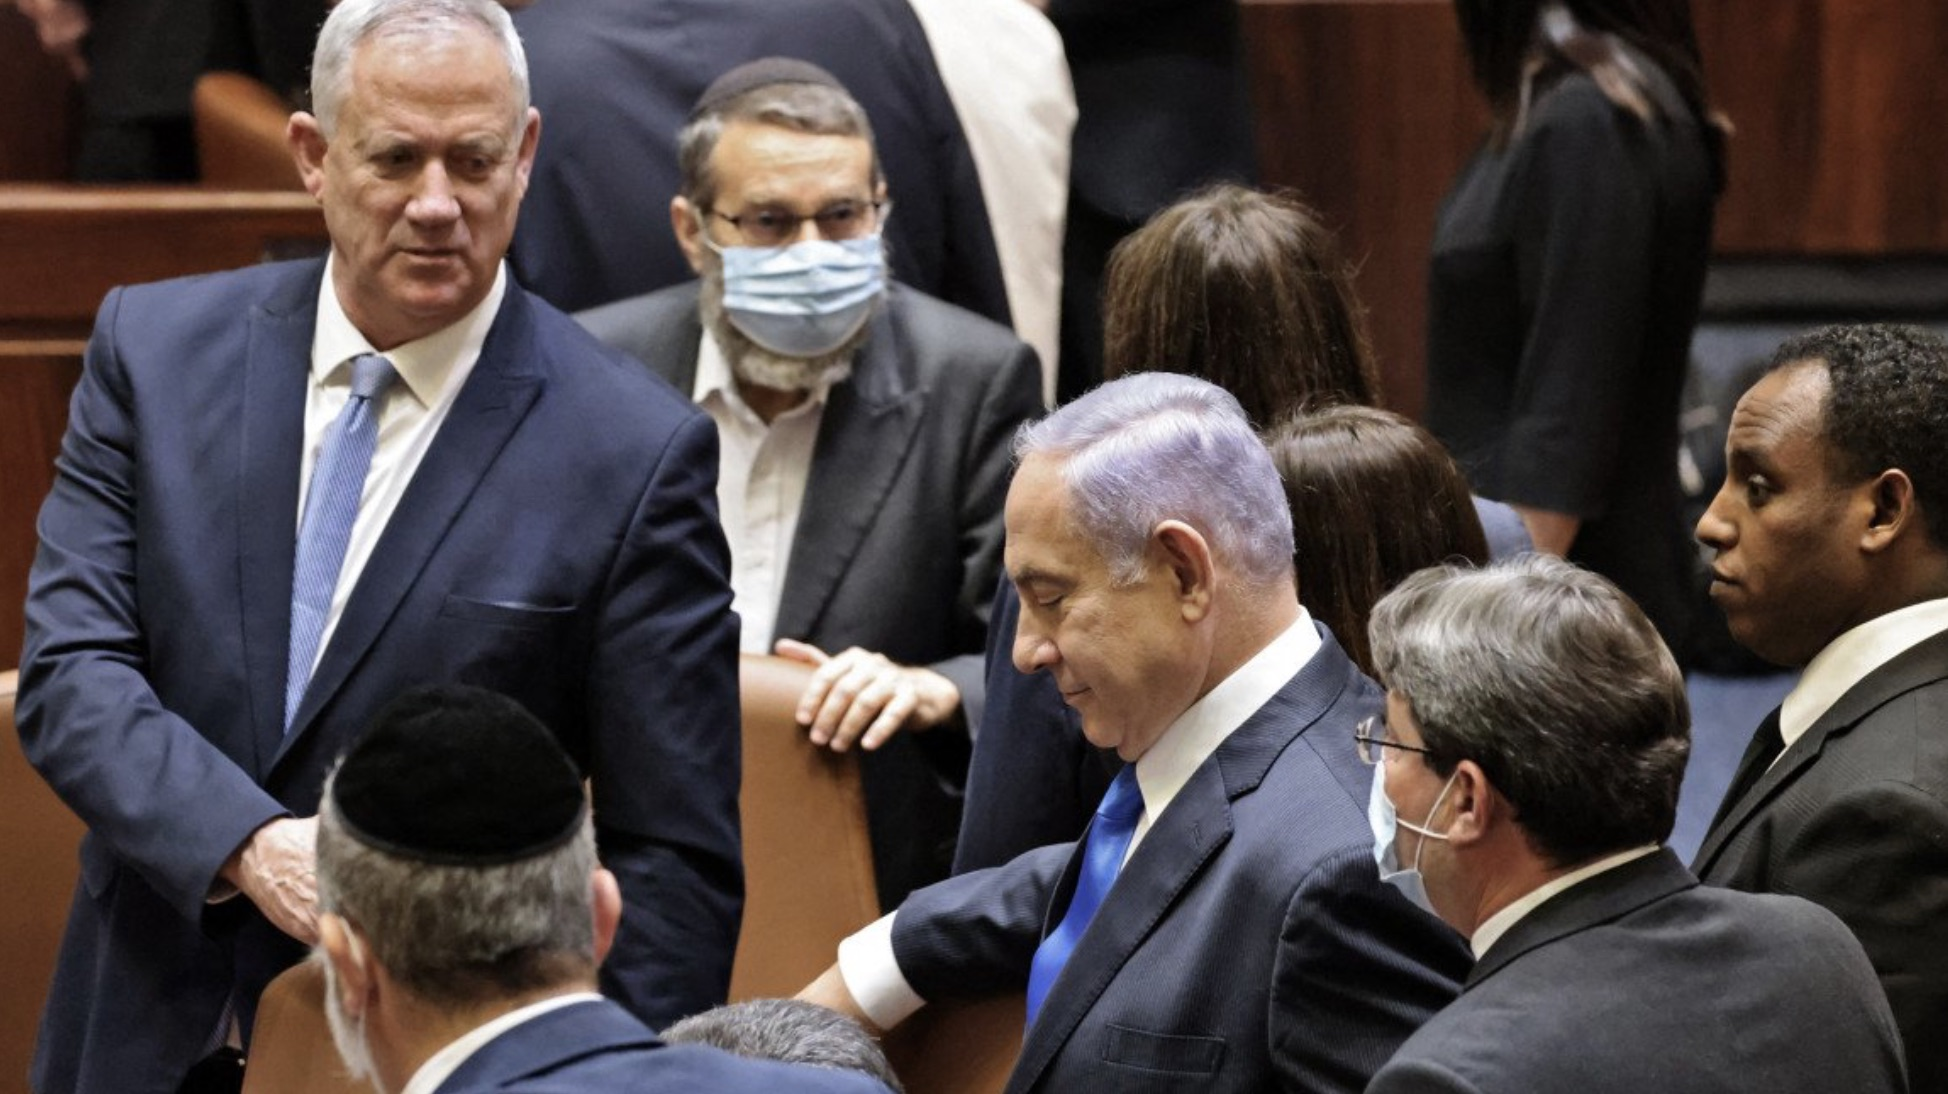 Image shows the halls of the Knesset, after the vote to oust Netanyahu. photo posted on twitter by @nadelalkhair